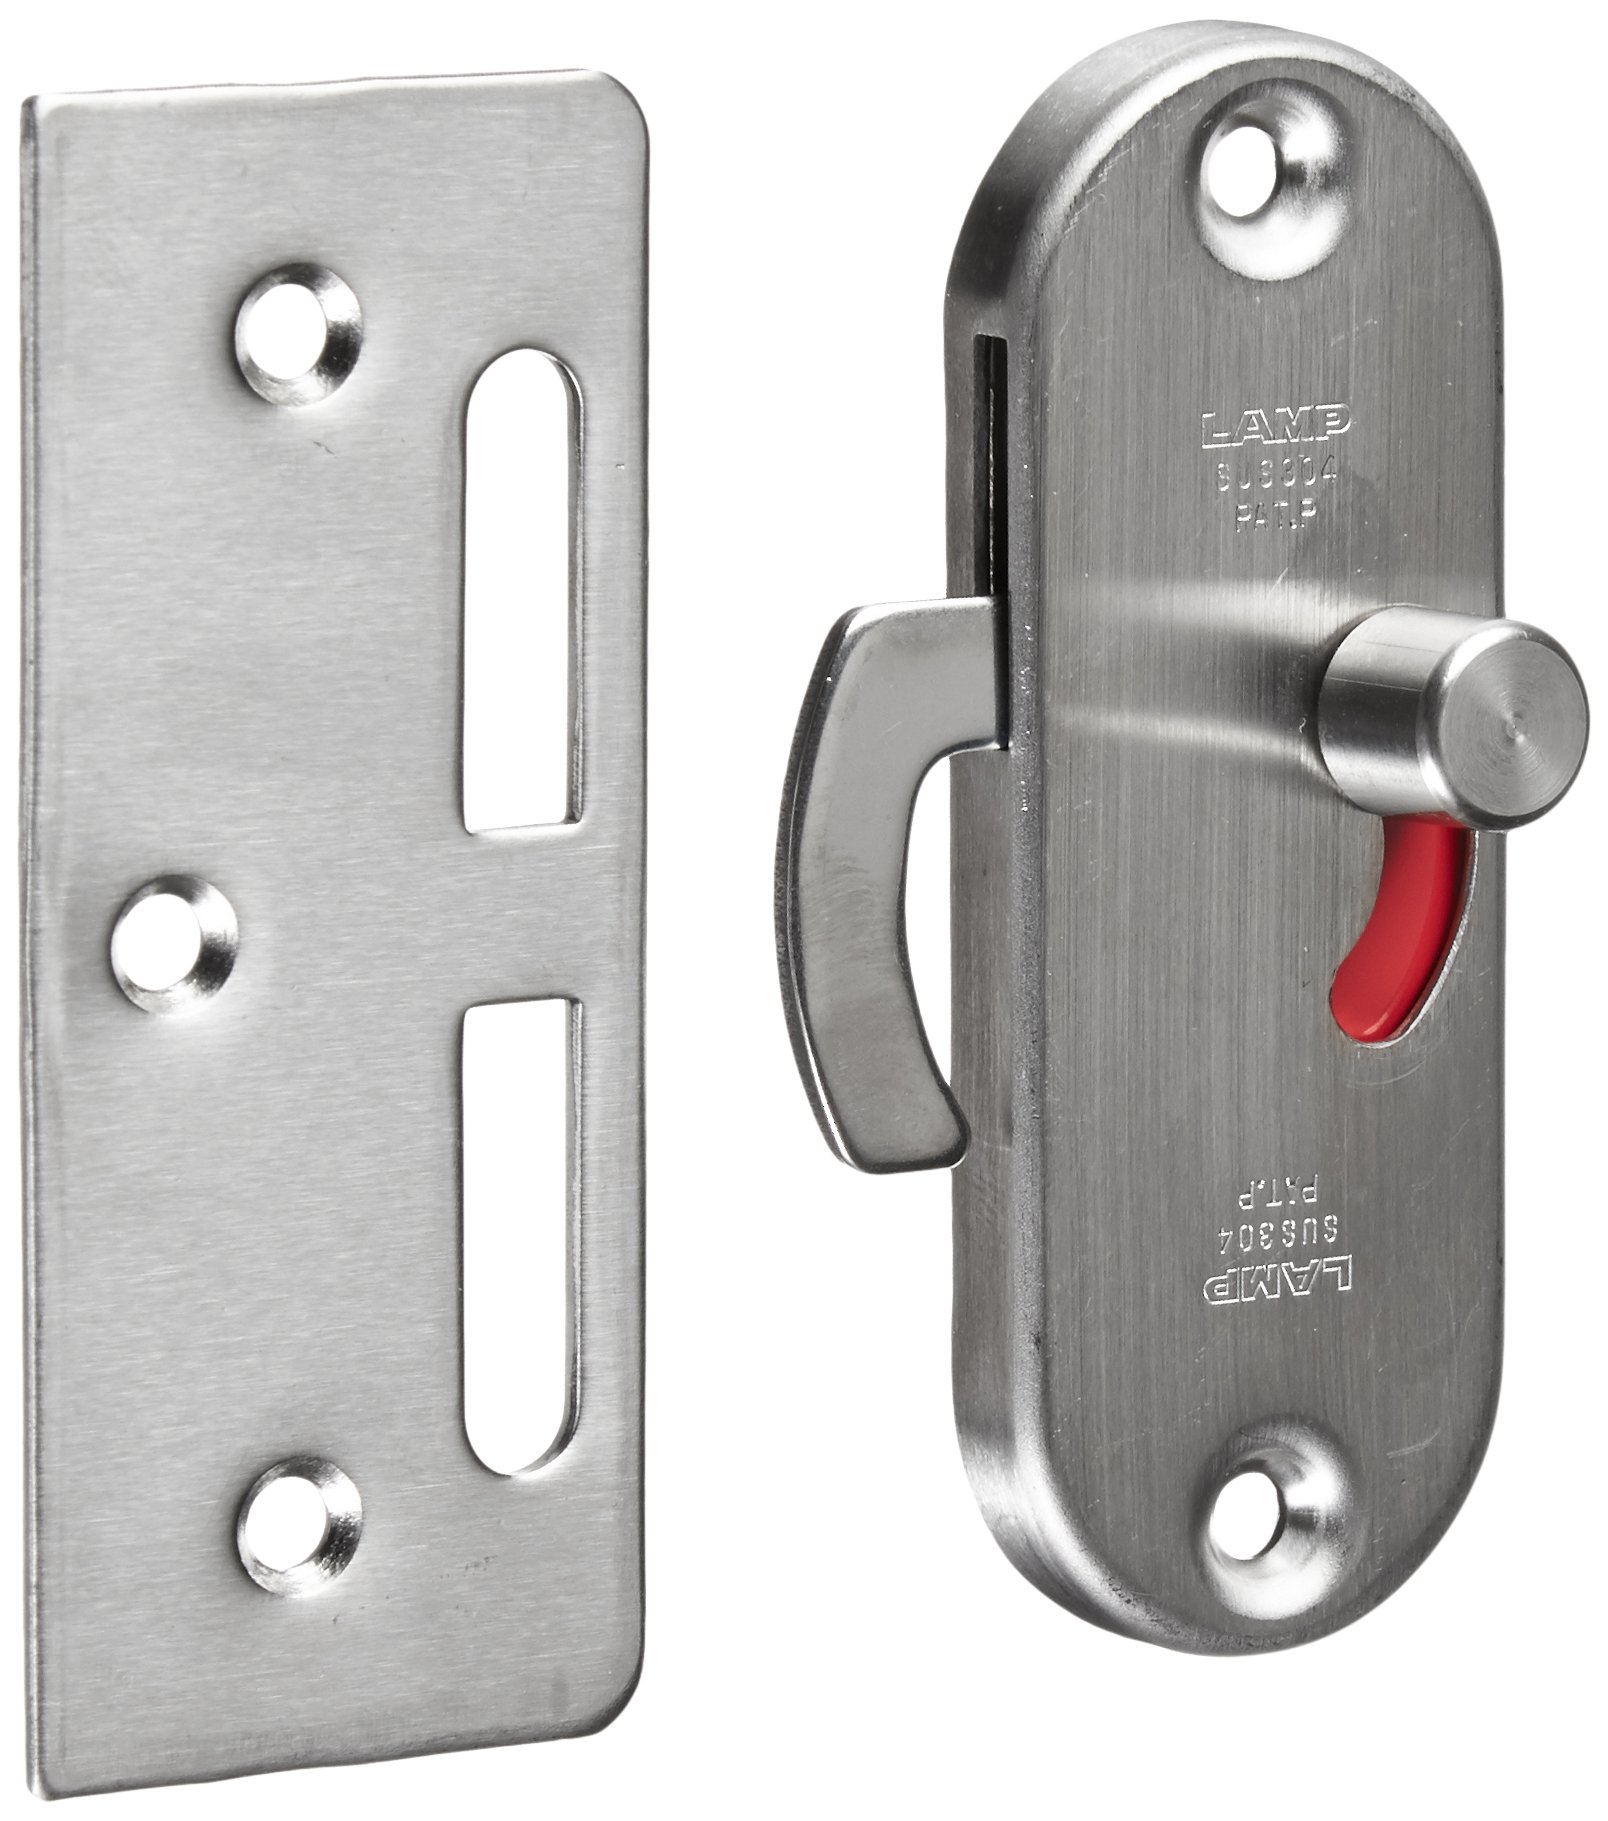 Sugatsune, Lamp HC-85/S Catches and Latches, 304 Stainless Steel, Brass, Satin